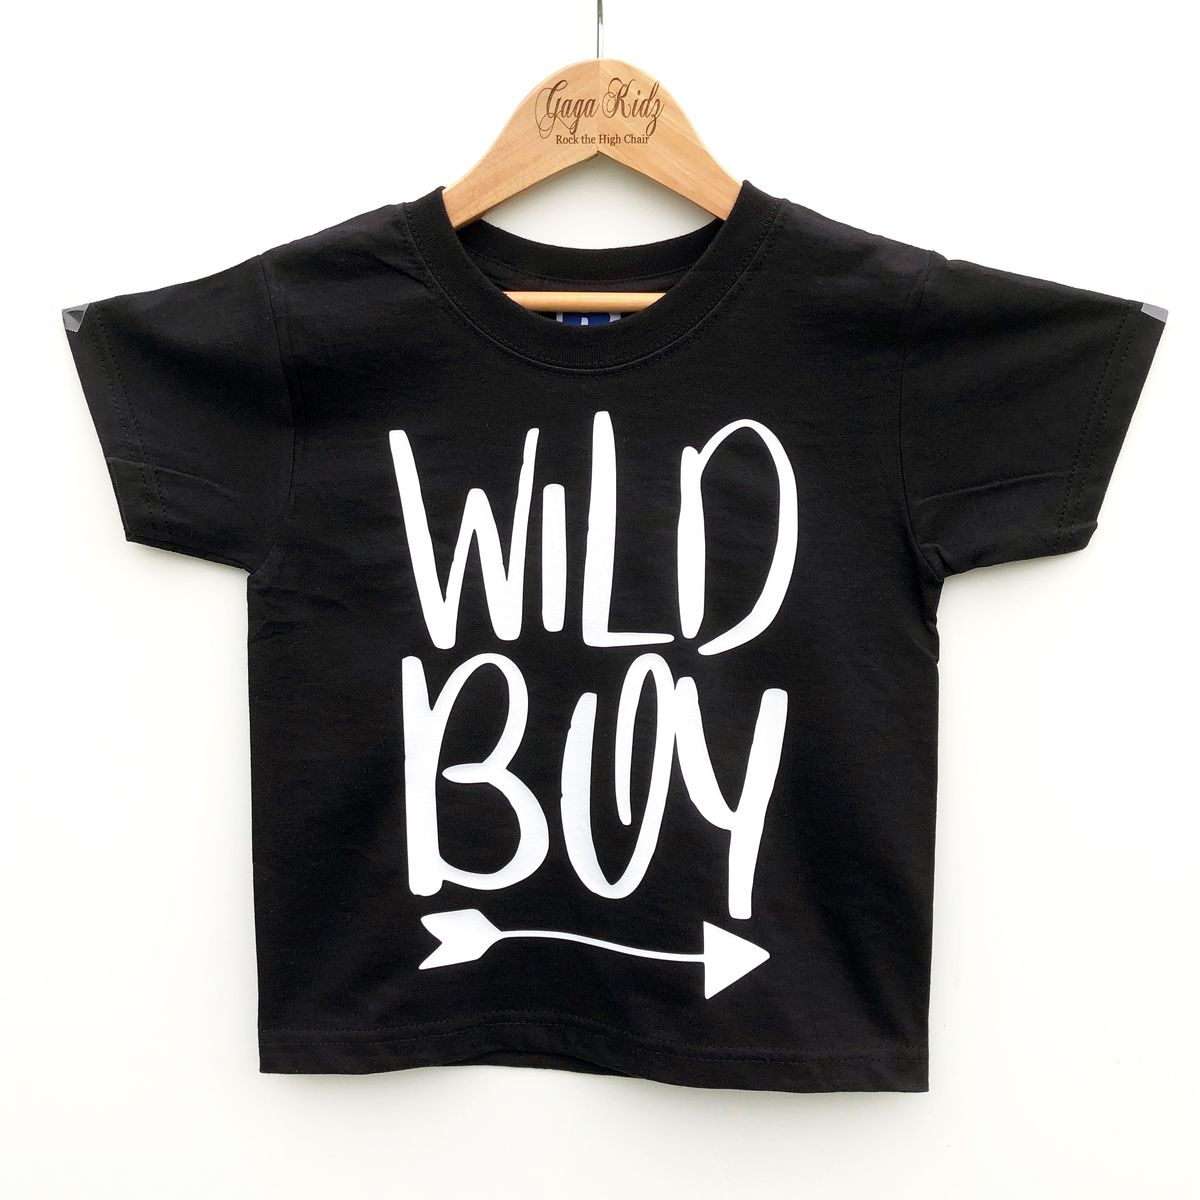 Wild Boy Black & White Kids T-Shirt (various sizes) - product image